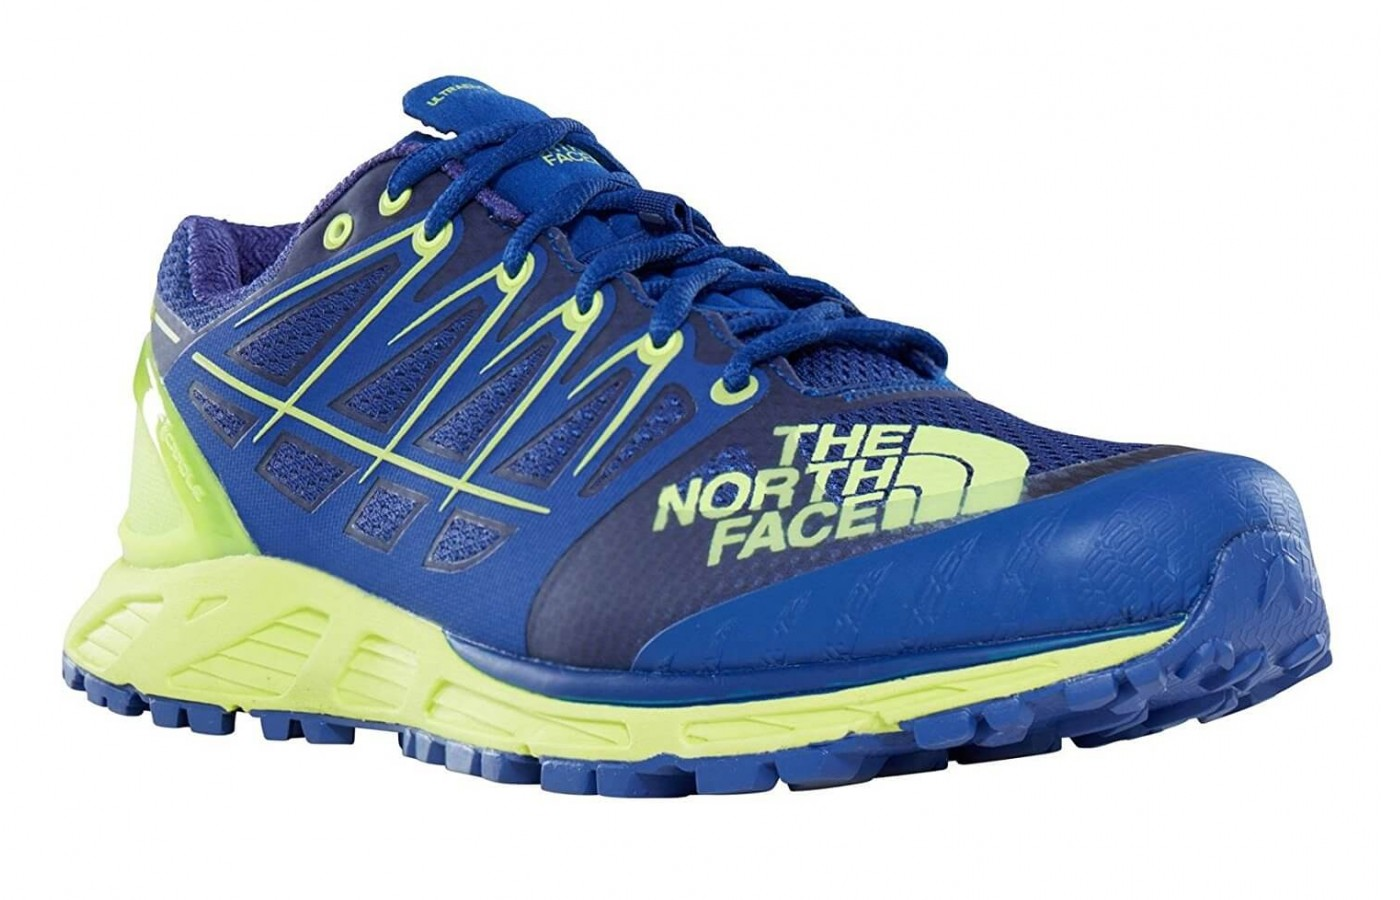 The The North Face Ultra Endurance II has an OrthoLite footbed